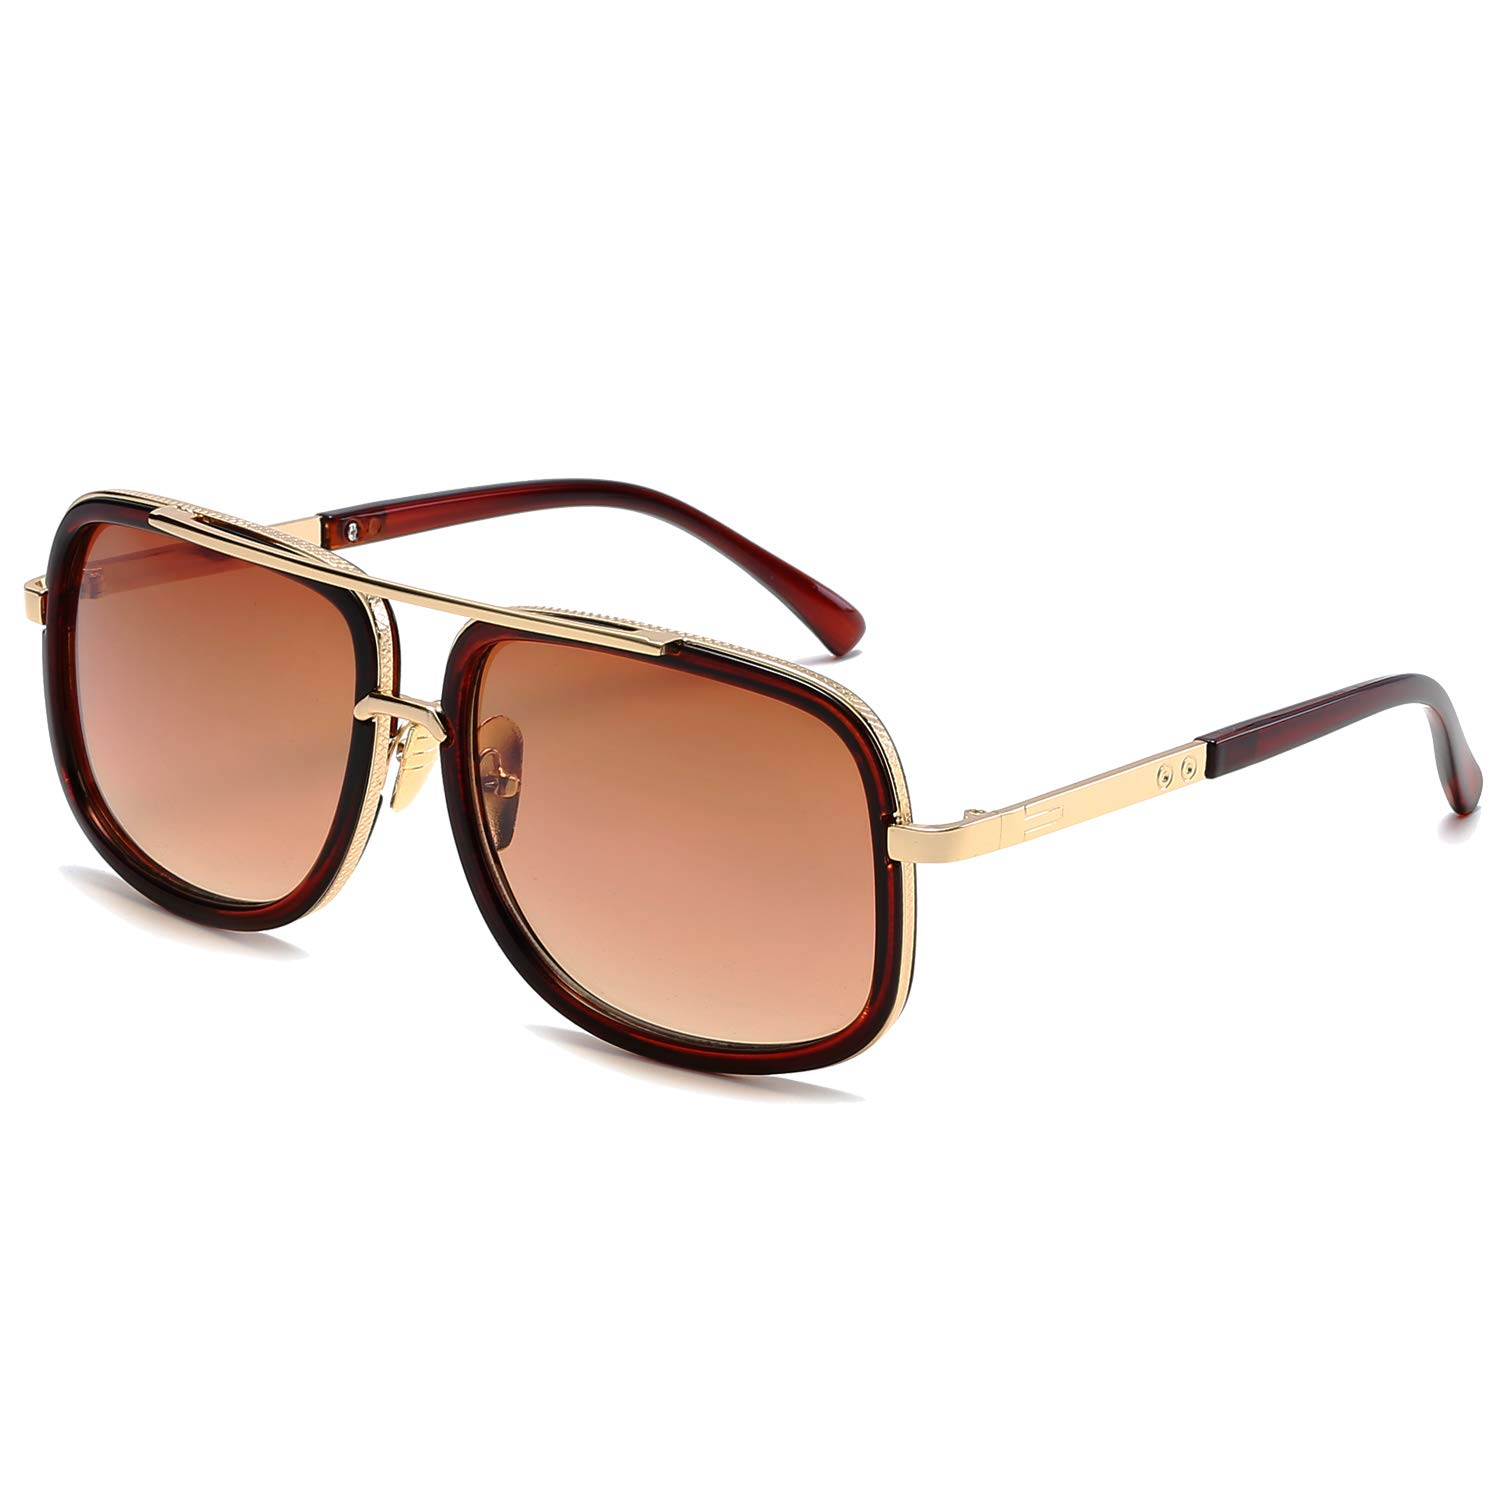 Eyerno Retro Aviator Sunglasses For Men Women Vintage Square Designer Sun Glasses(Brown) by EYERNO